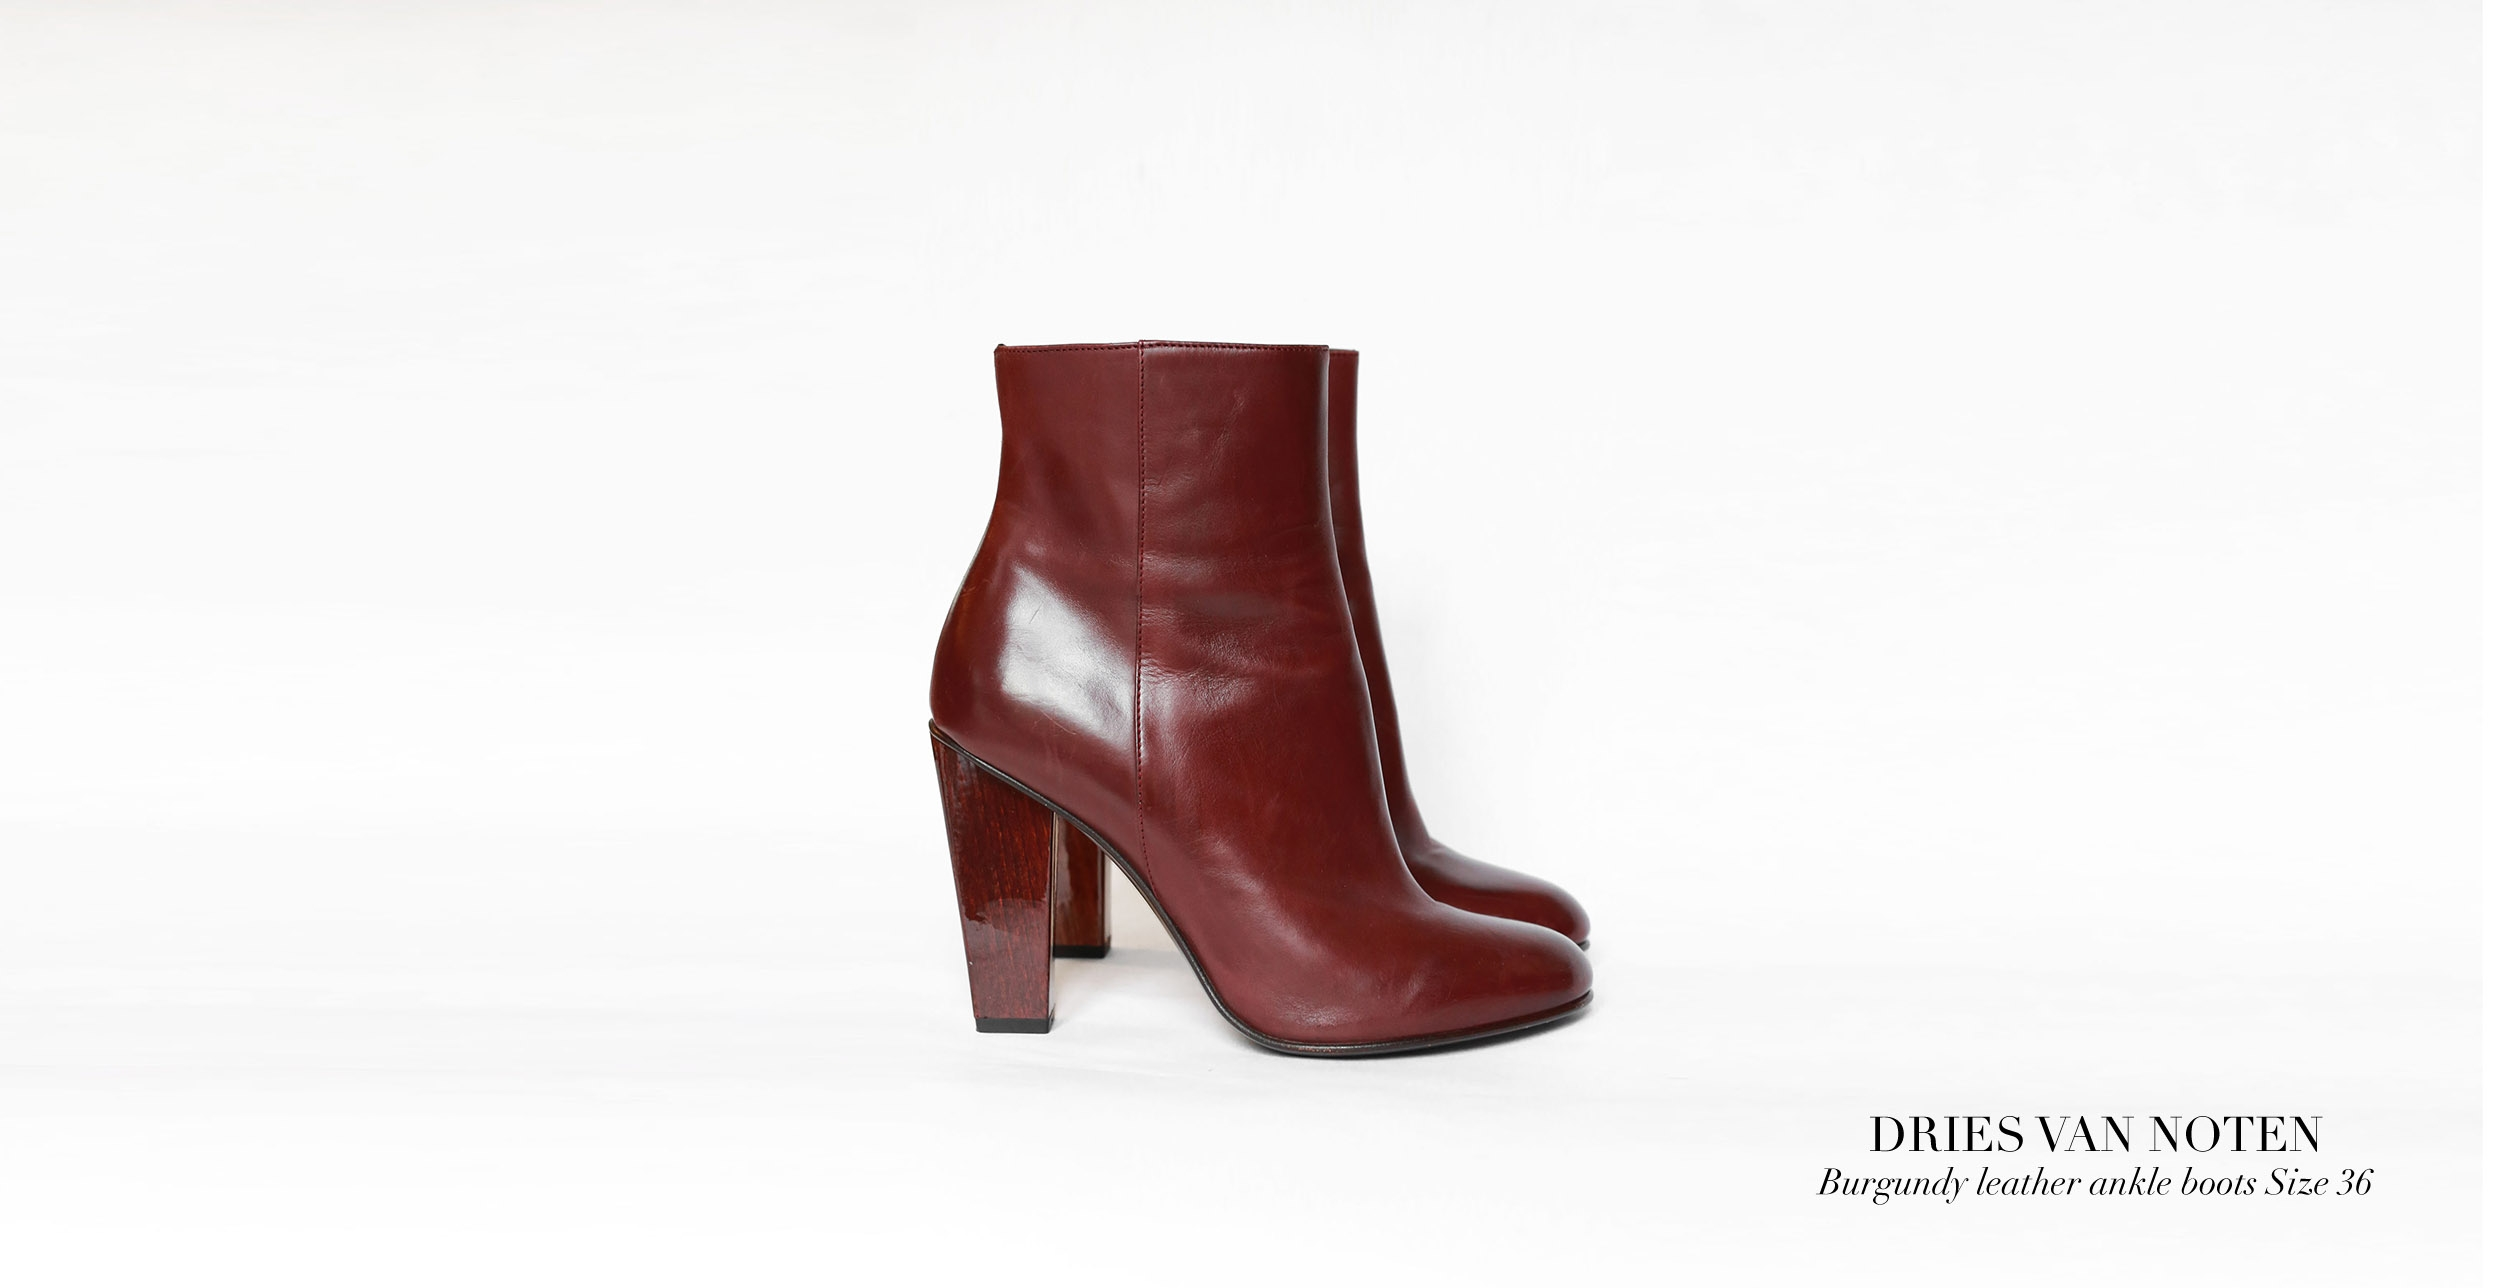 DRIES VAN NOTEN Burgundy leather and wooden heel high ankle boots Retail price €700 Size 36